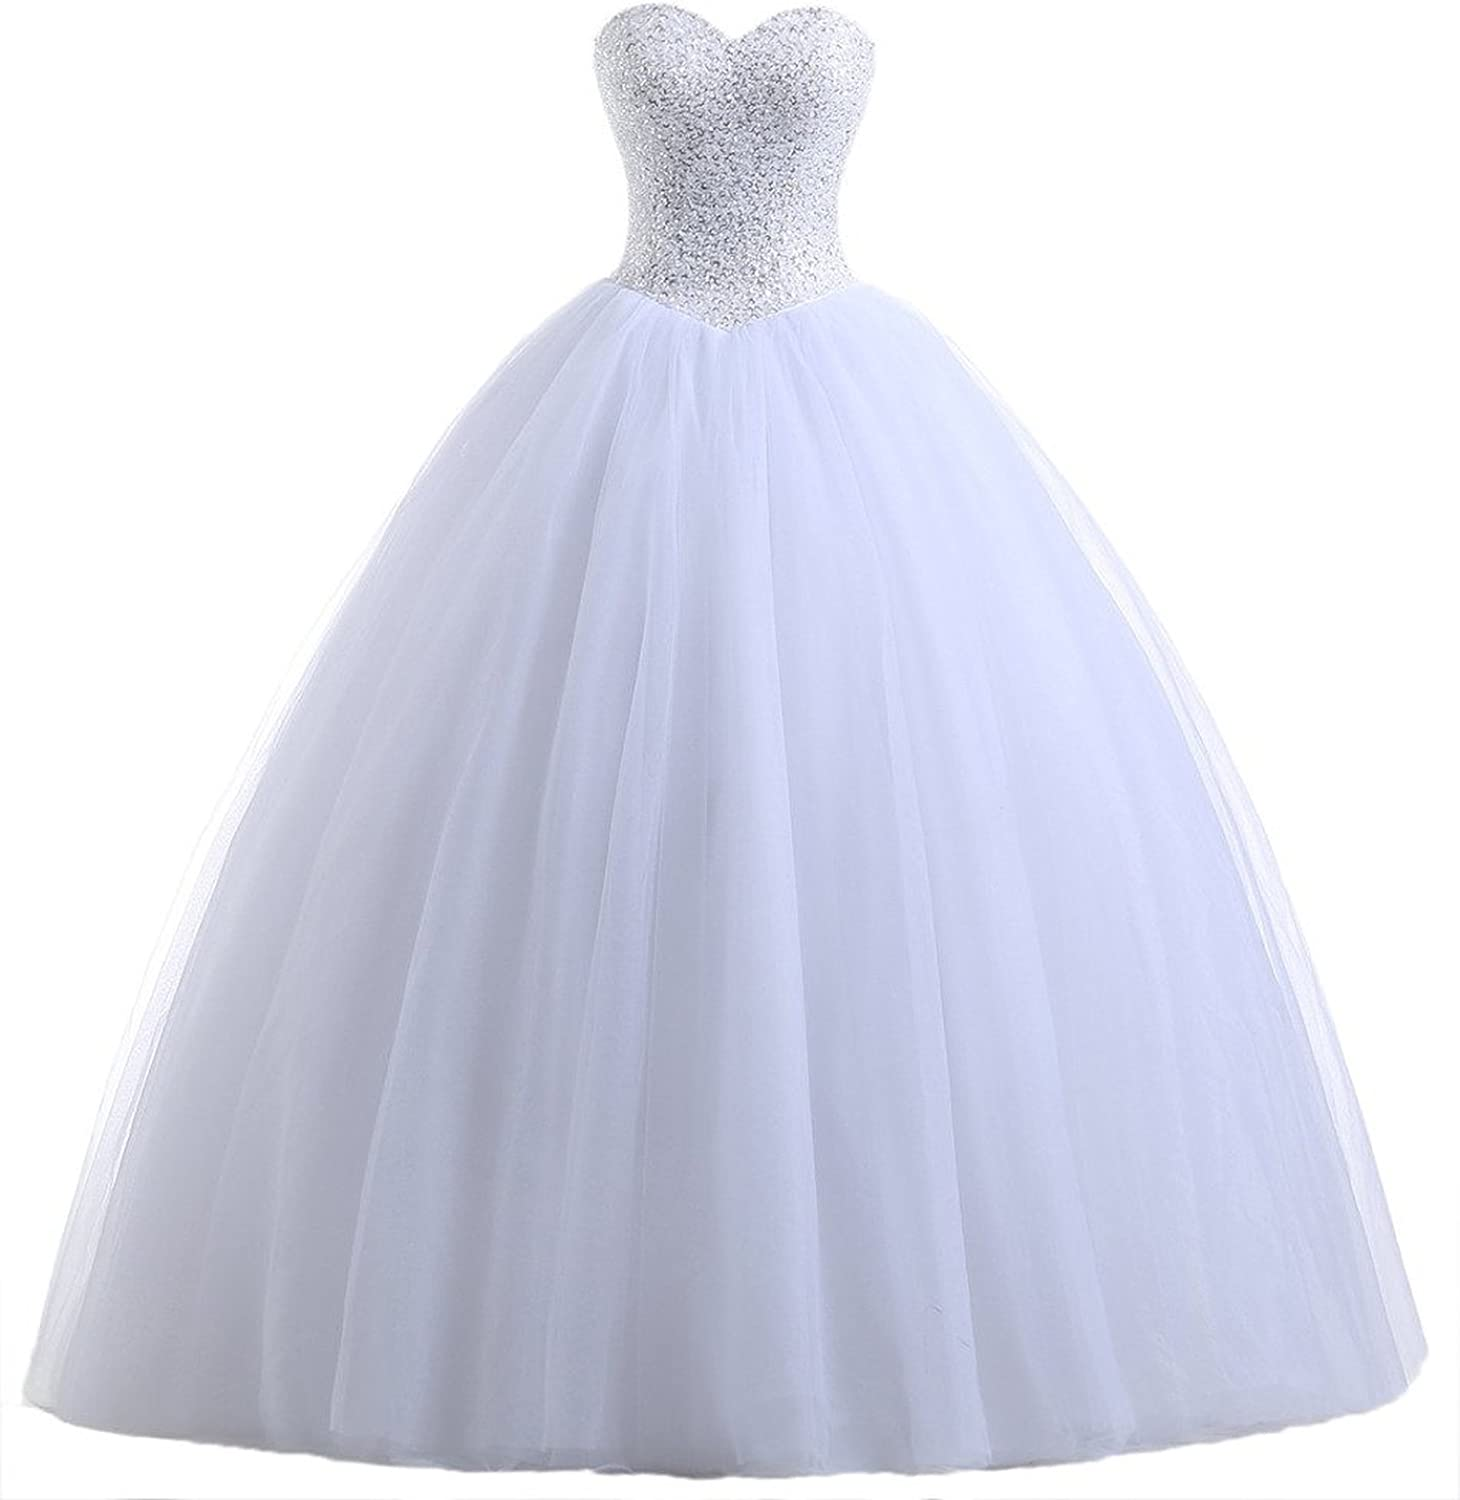 Vampal White Strapless SequinBodice Basque Waist Ball Gown Wedding Dress